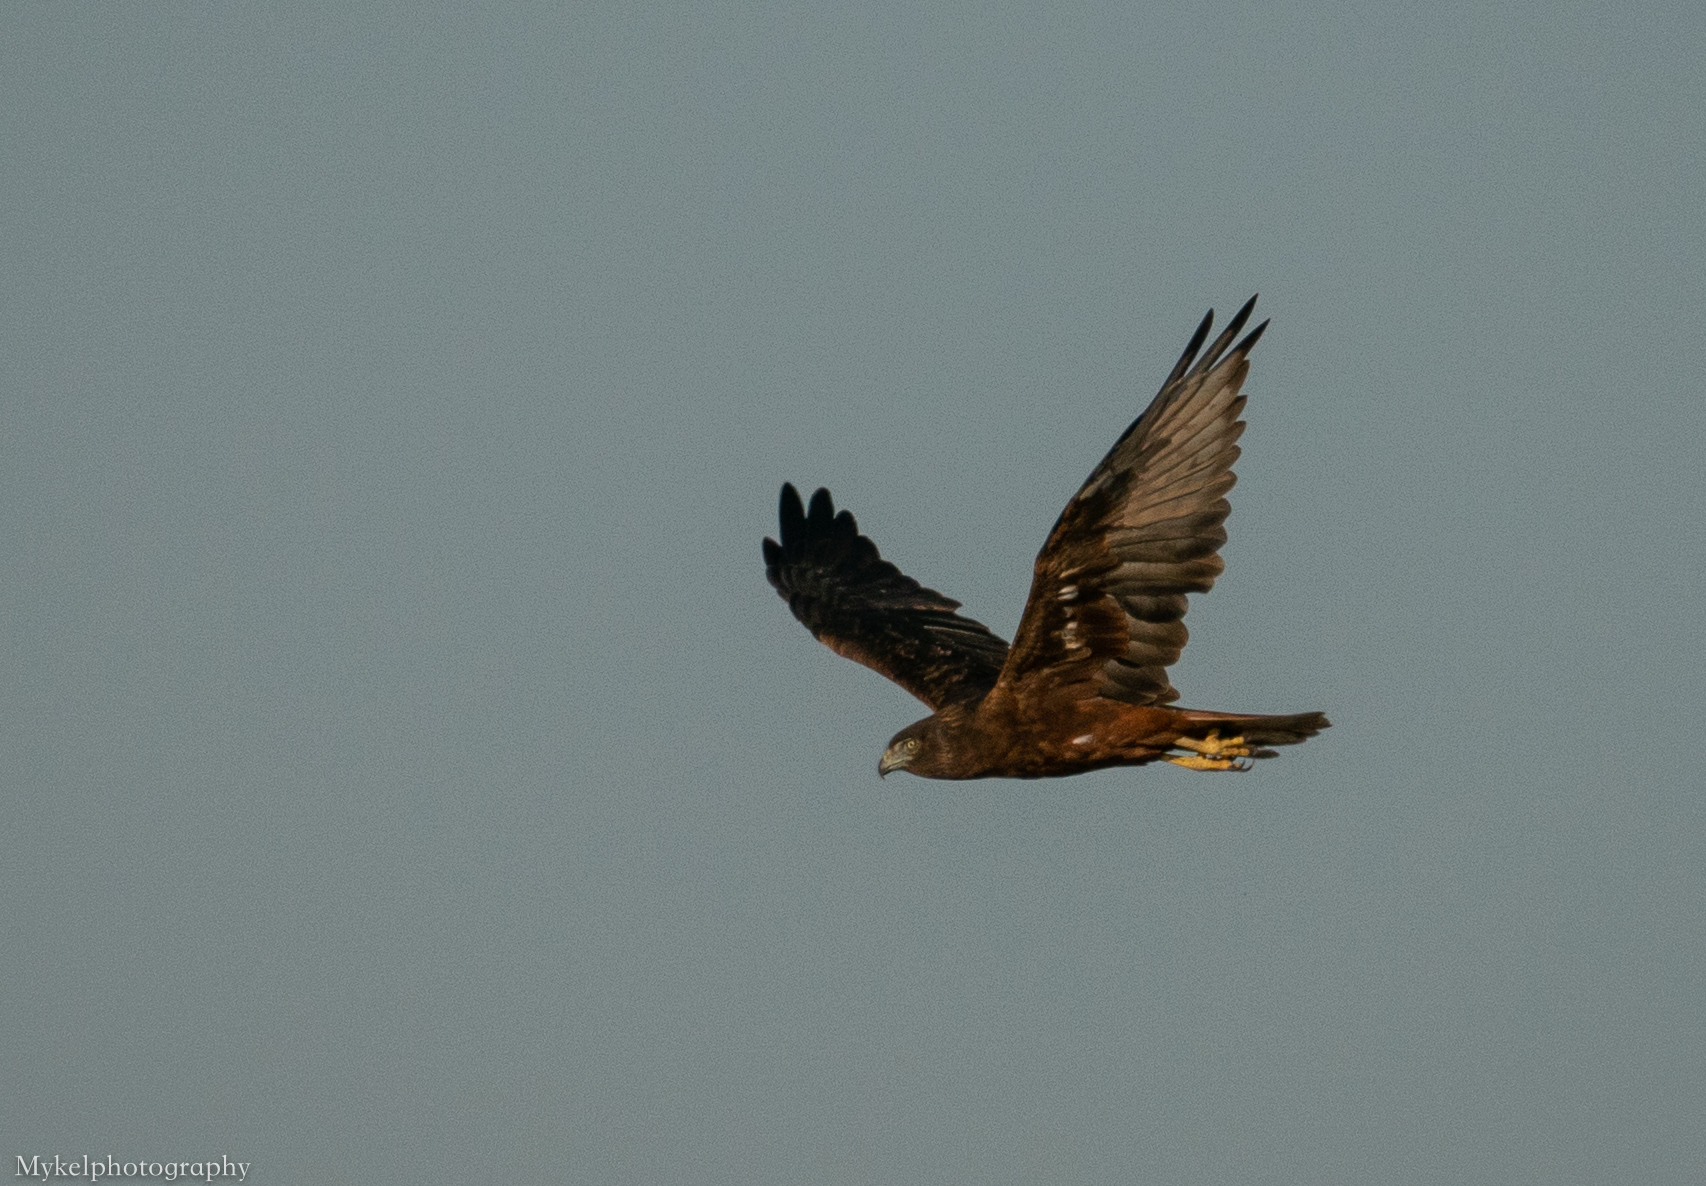 Swamp Harrier, Circus approximans, Accipitridae